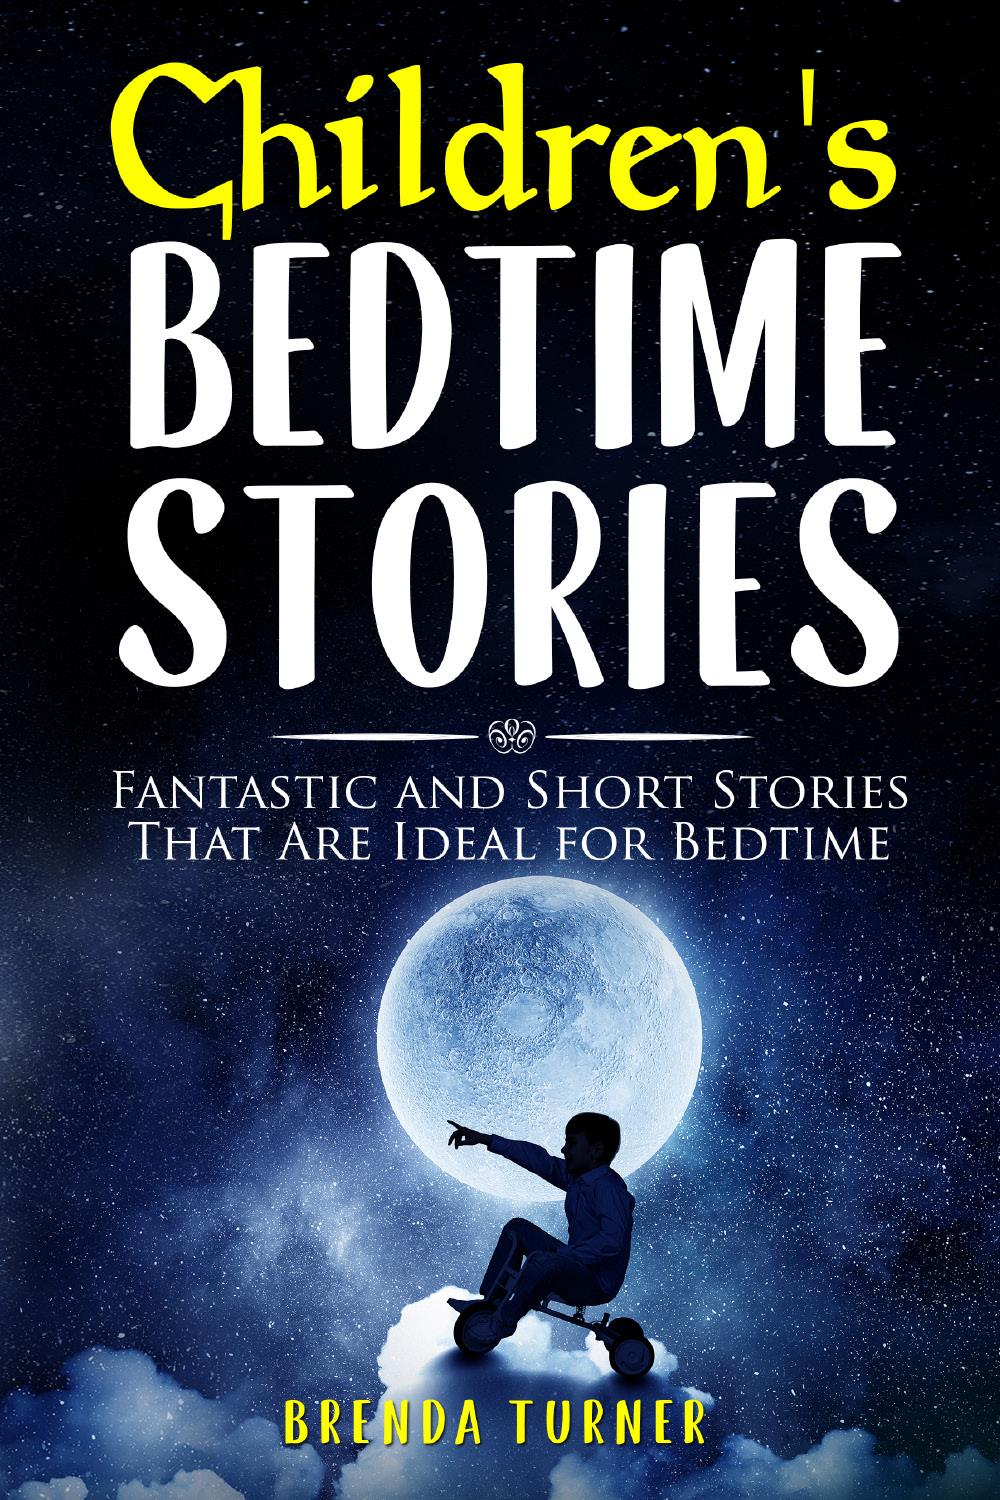 Children's Bedtime Stories. Fantastic and Short Stories That Are Ideal for Bedtime